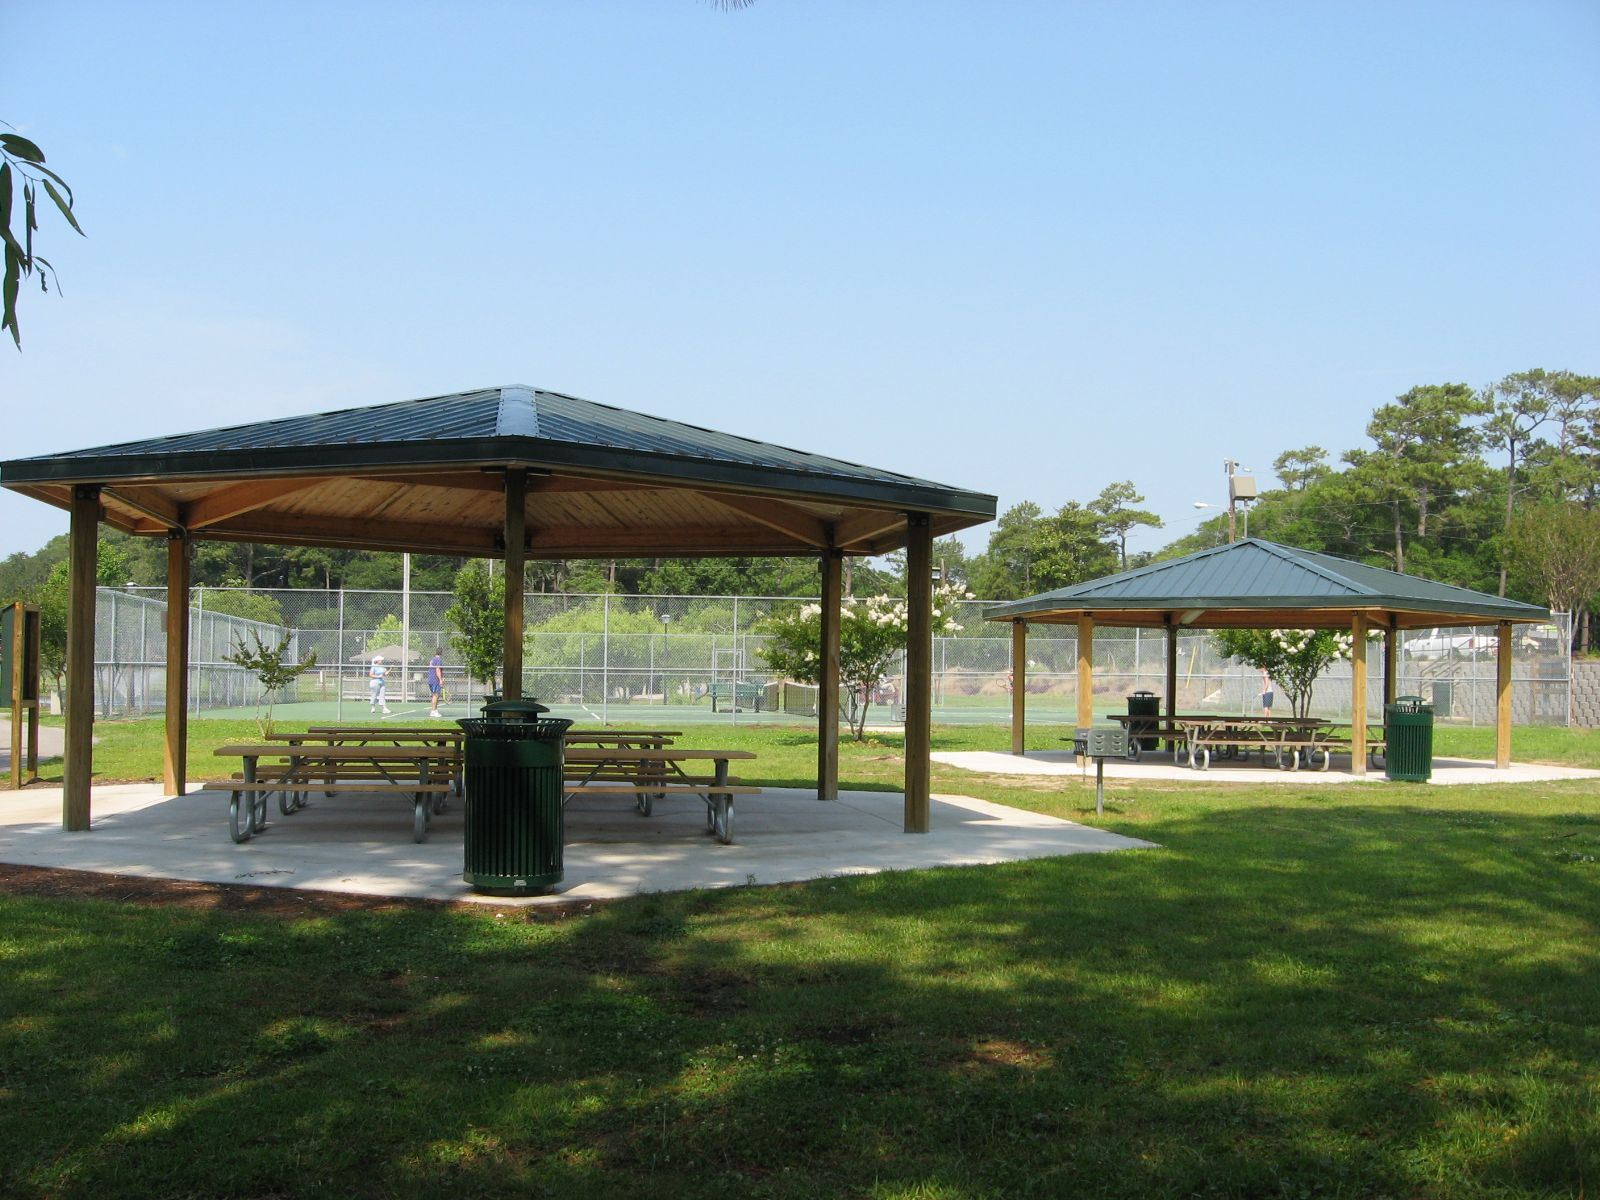 Two Shelters with Picnic Tables